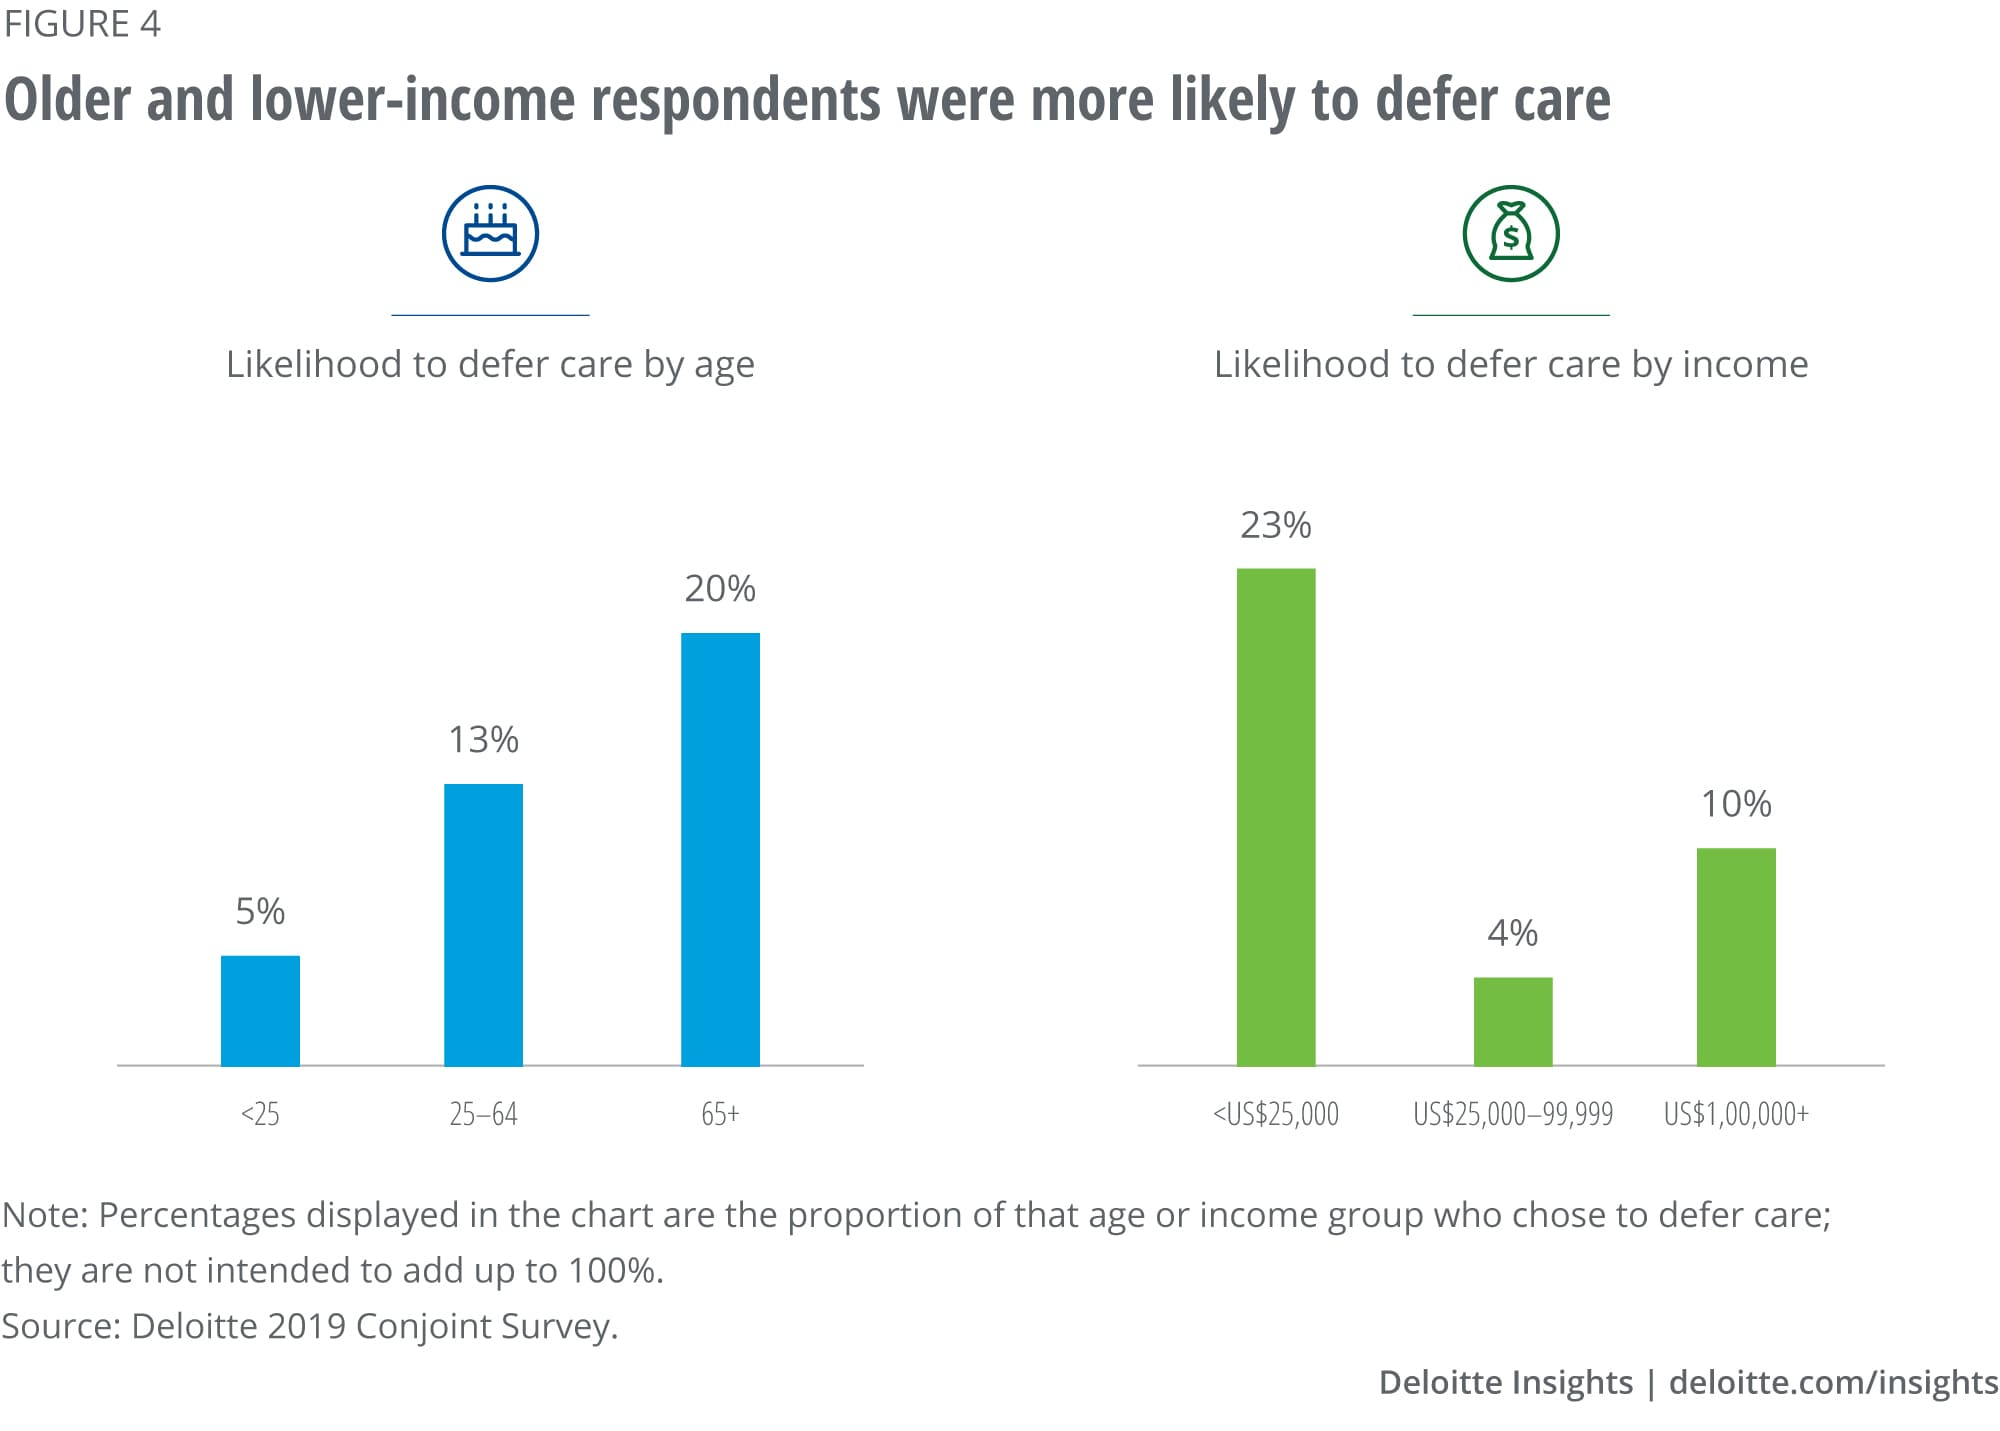 Older and lower-income respondents were more likely to defer care